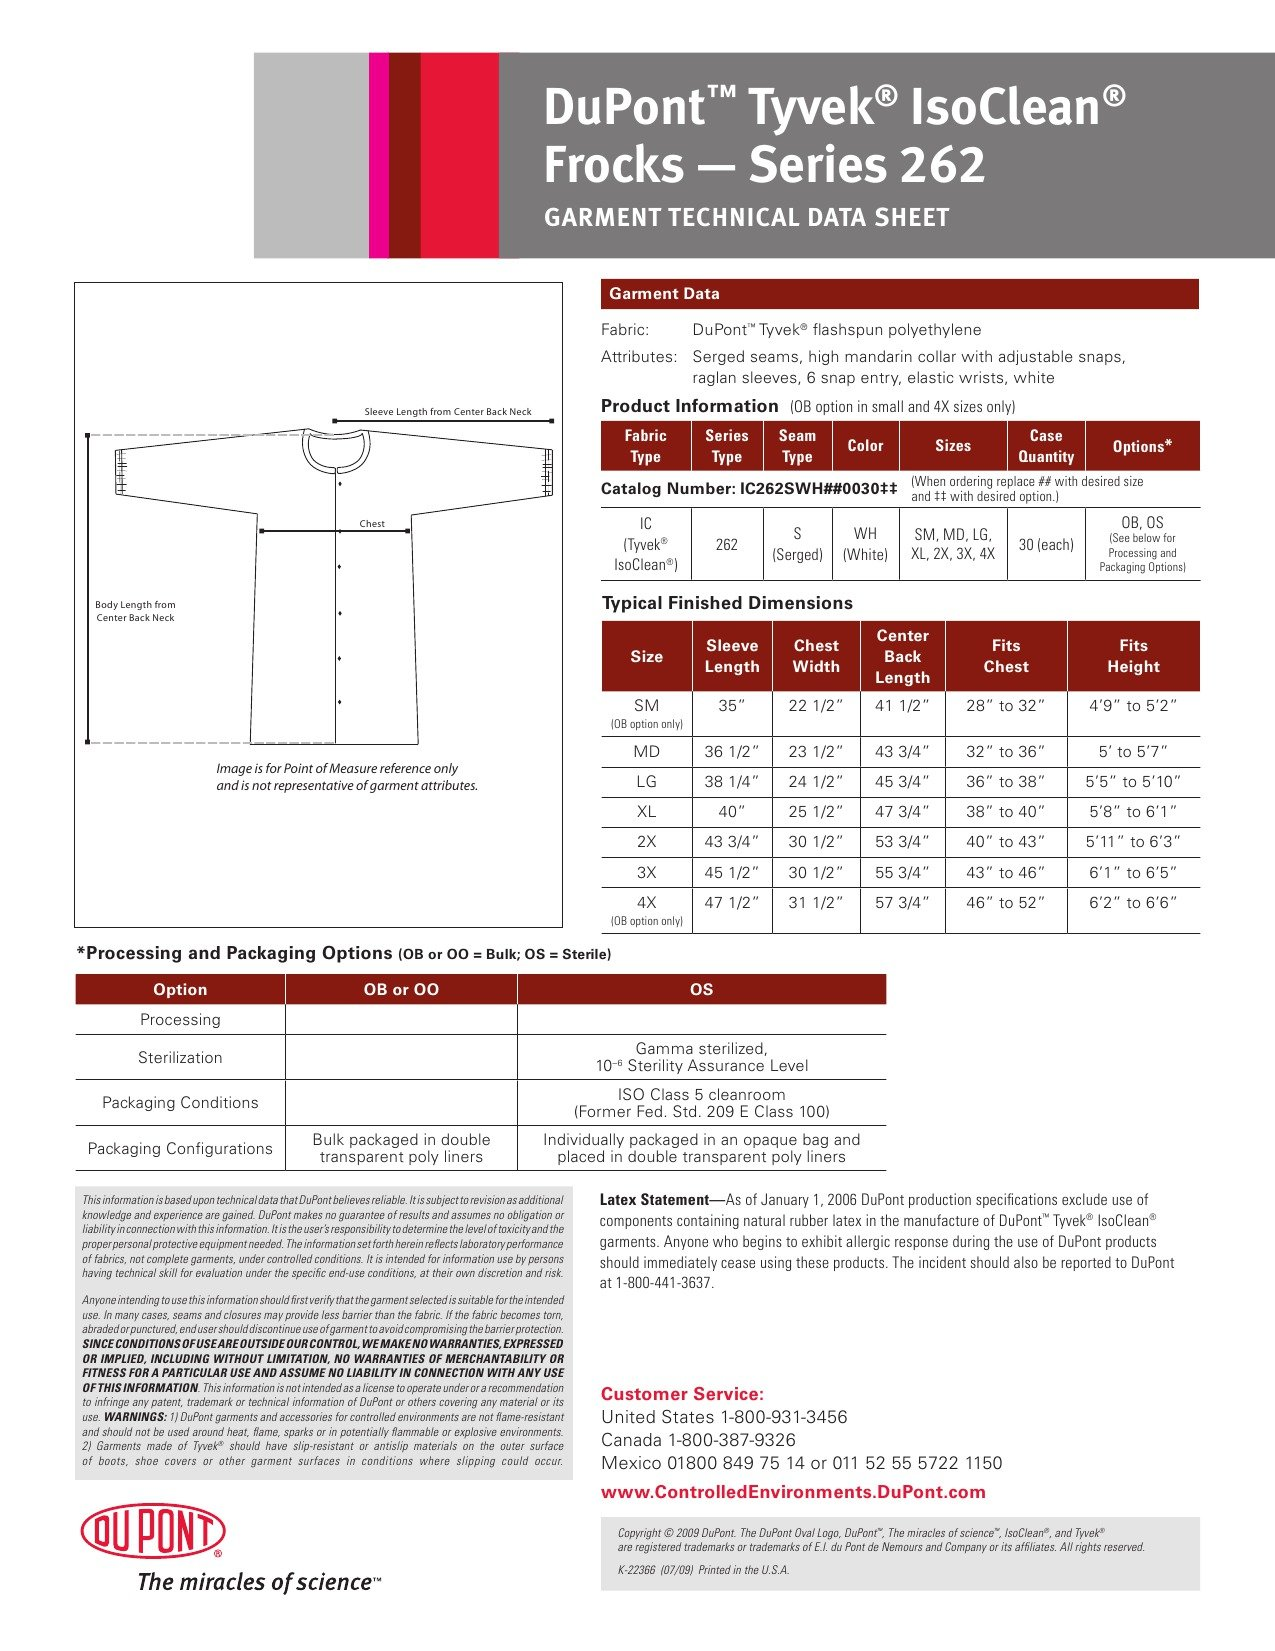 DuPont Tyvek IsoClean IC262S Frock with Snap Closure and Elastic Cuff, White, Large (Pack of 30) by IsoClean (Image #2)